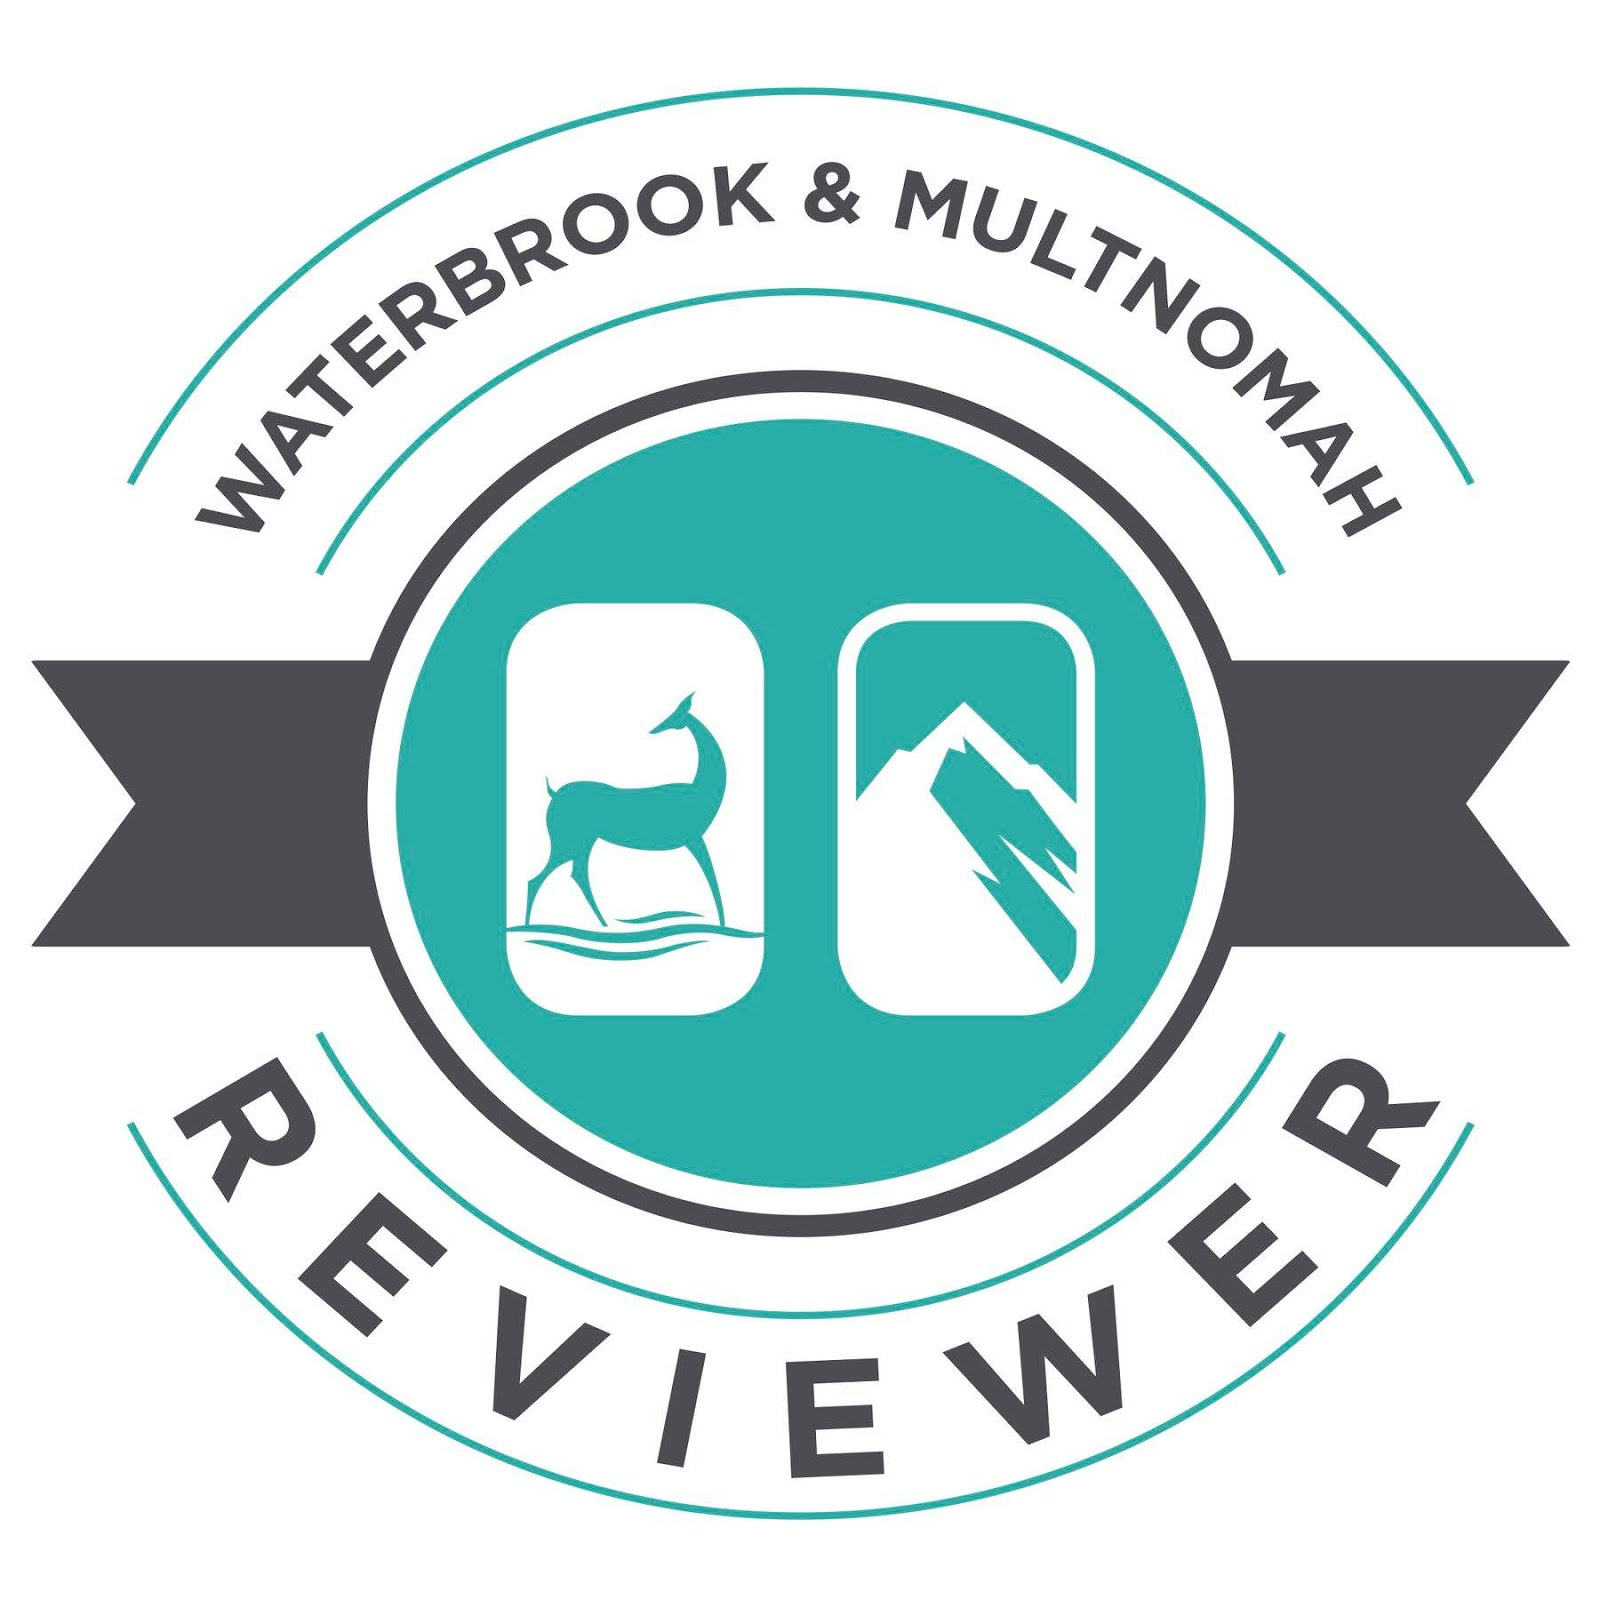 Waterbrook & Multnomah Reviewer